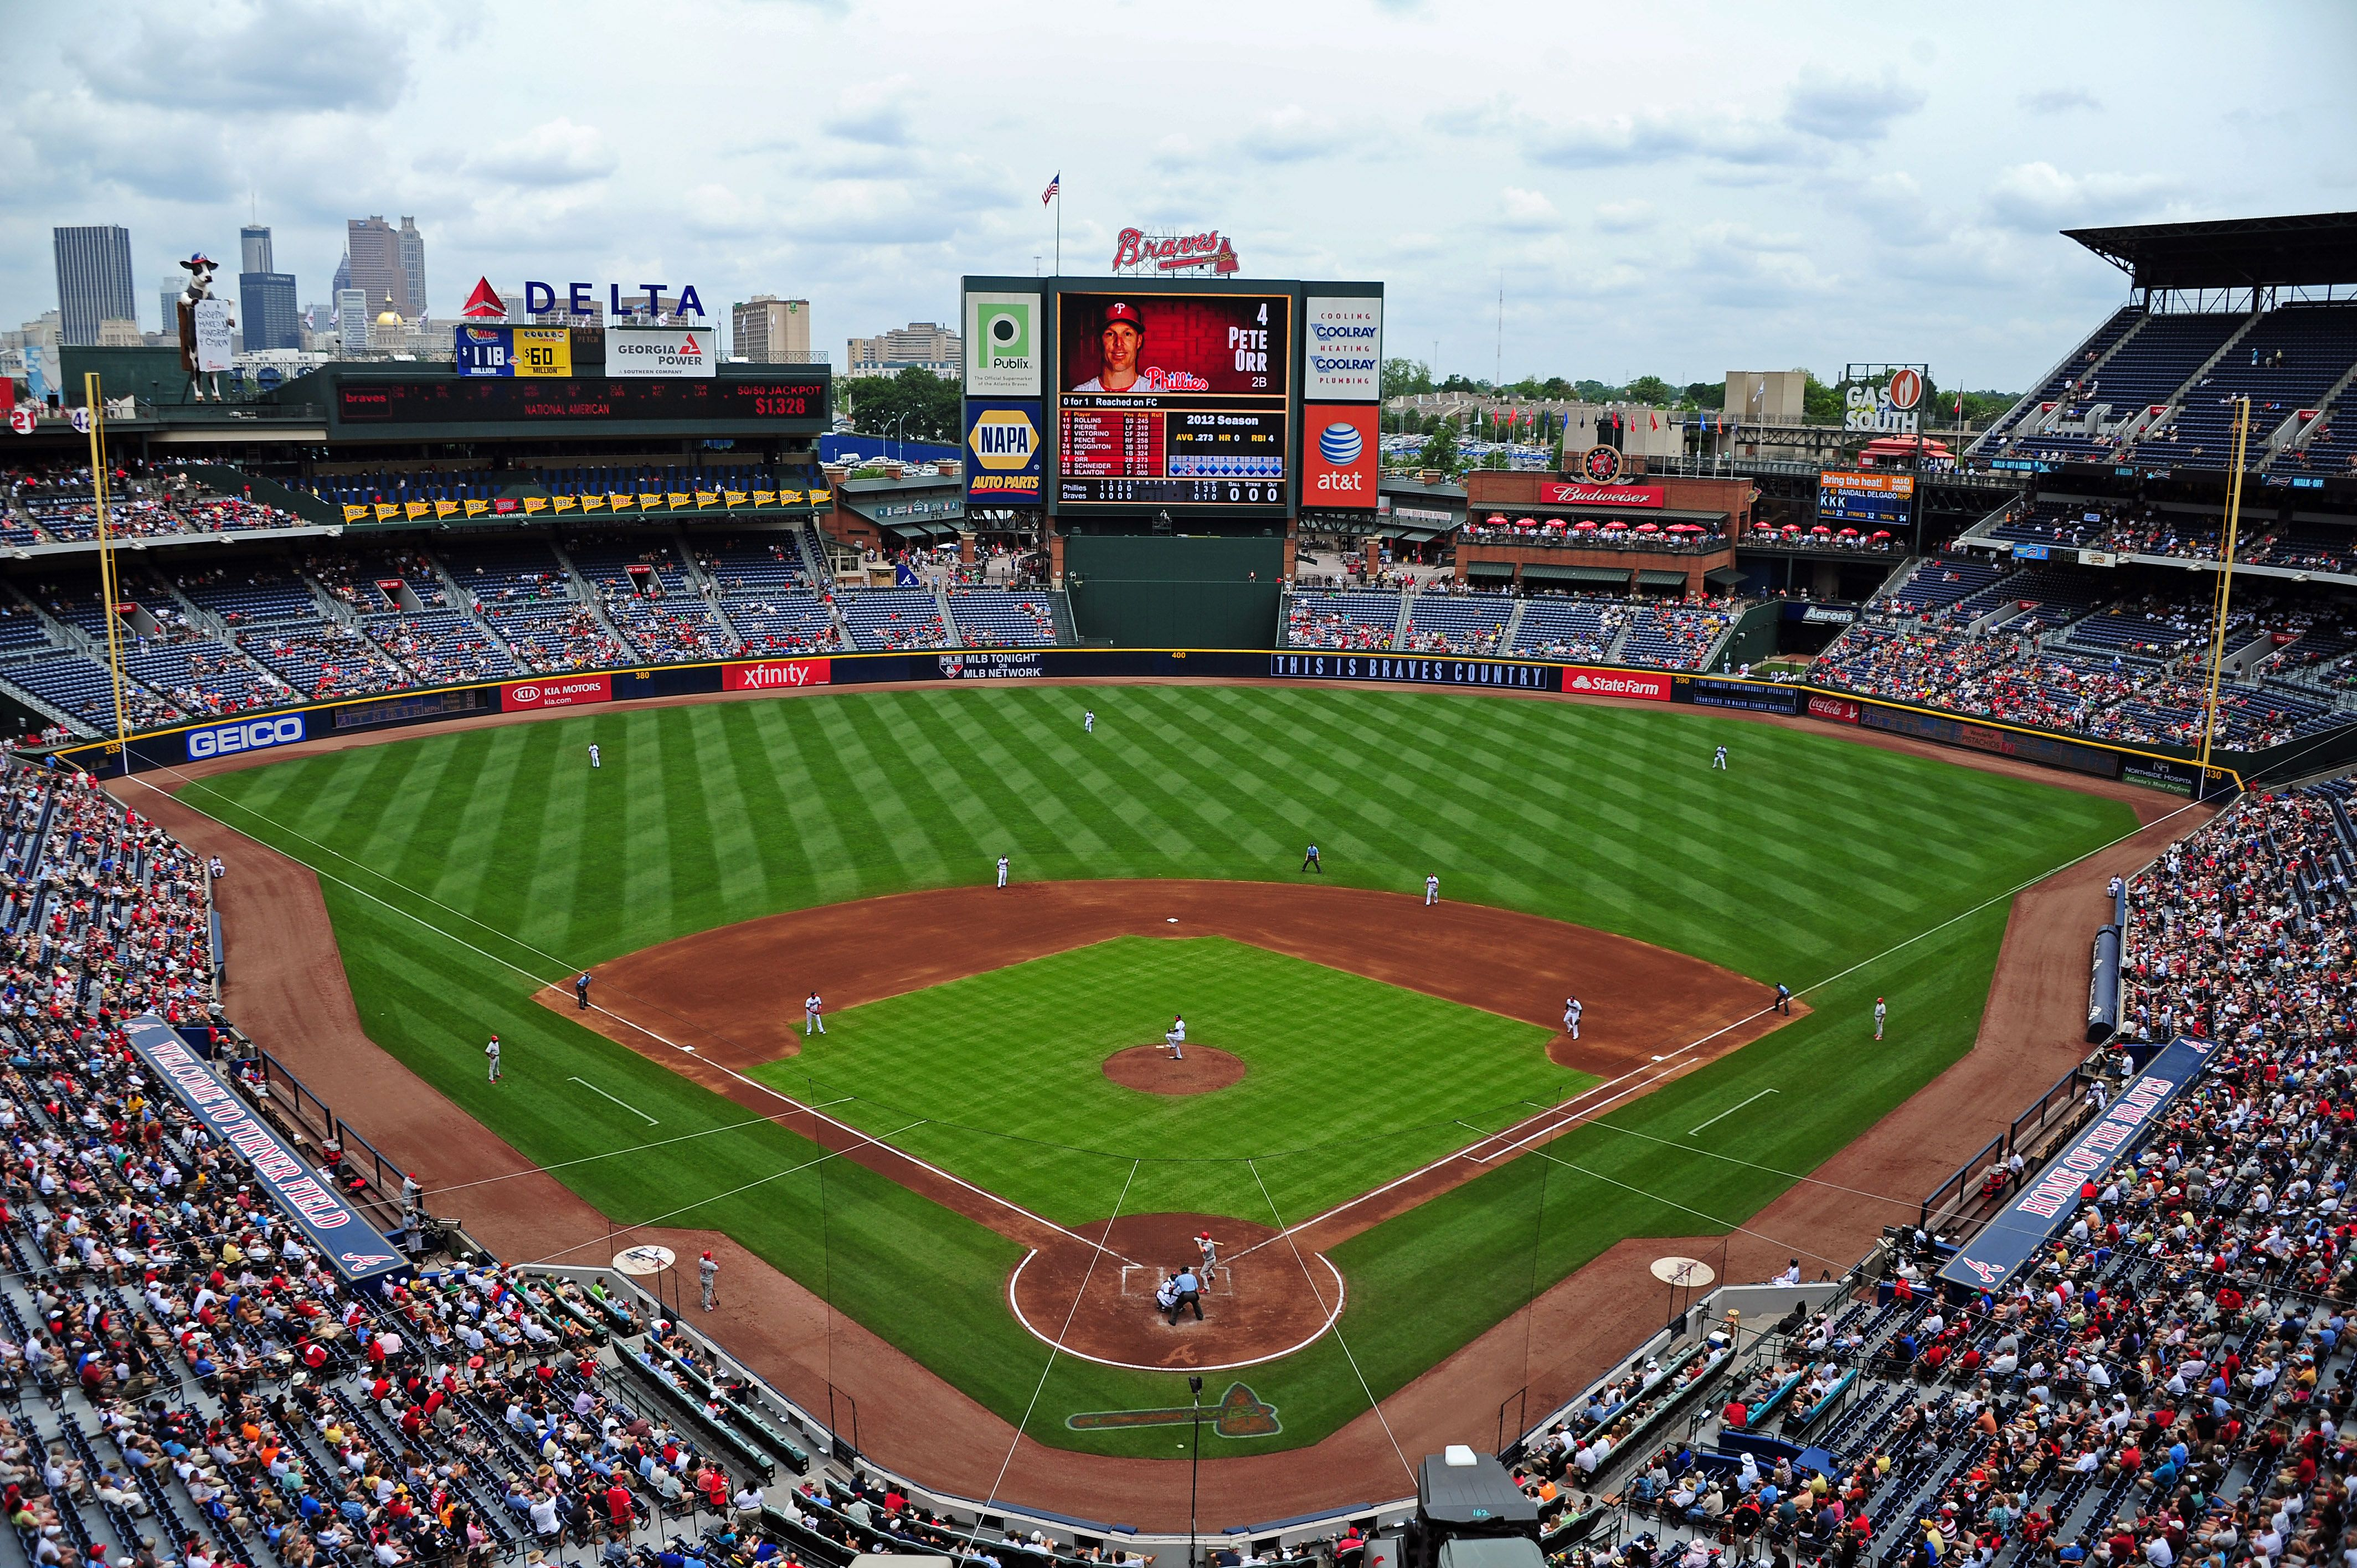 Turner Field Home to the Atlanta Braves Take Me Out to